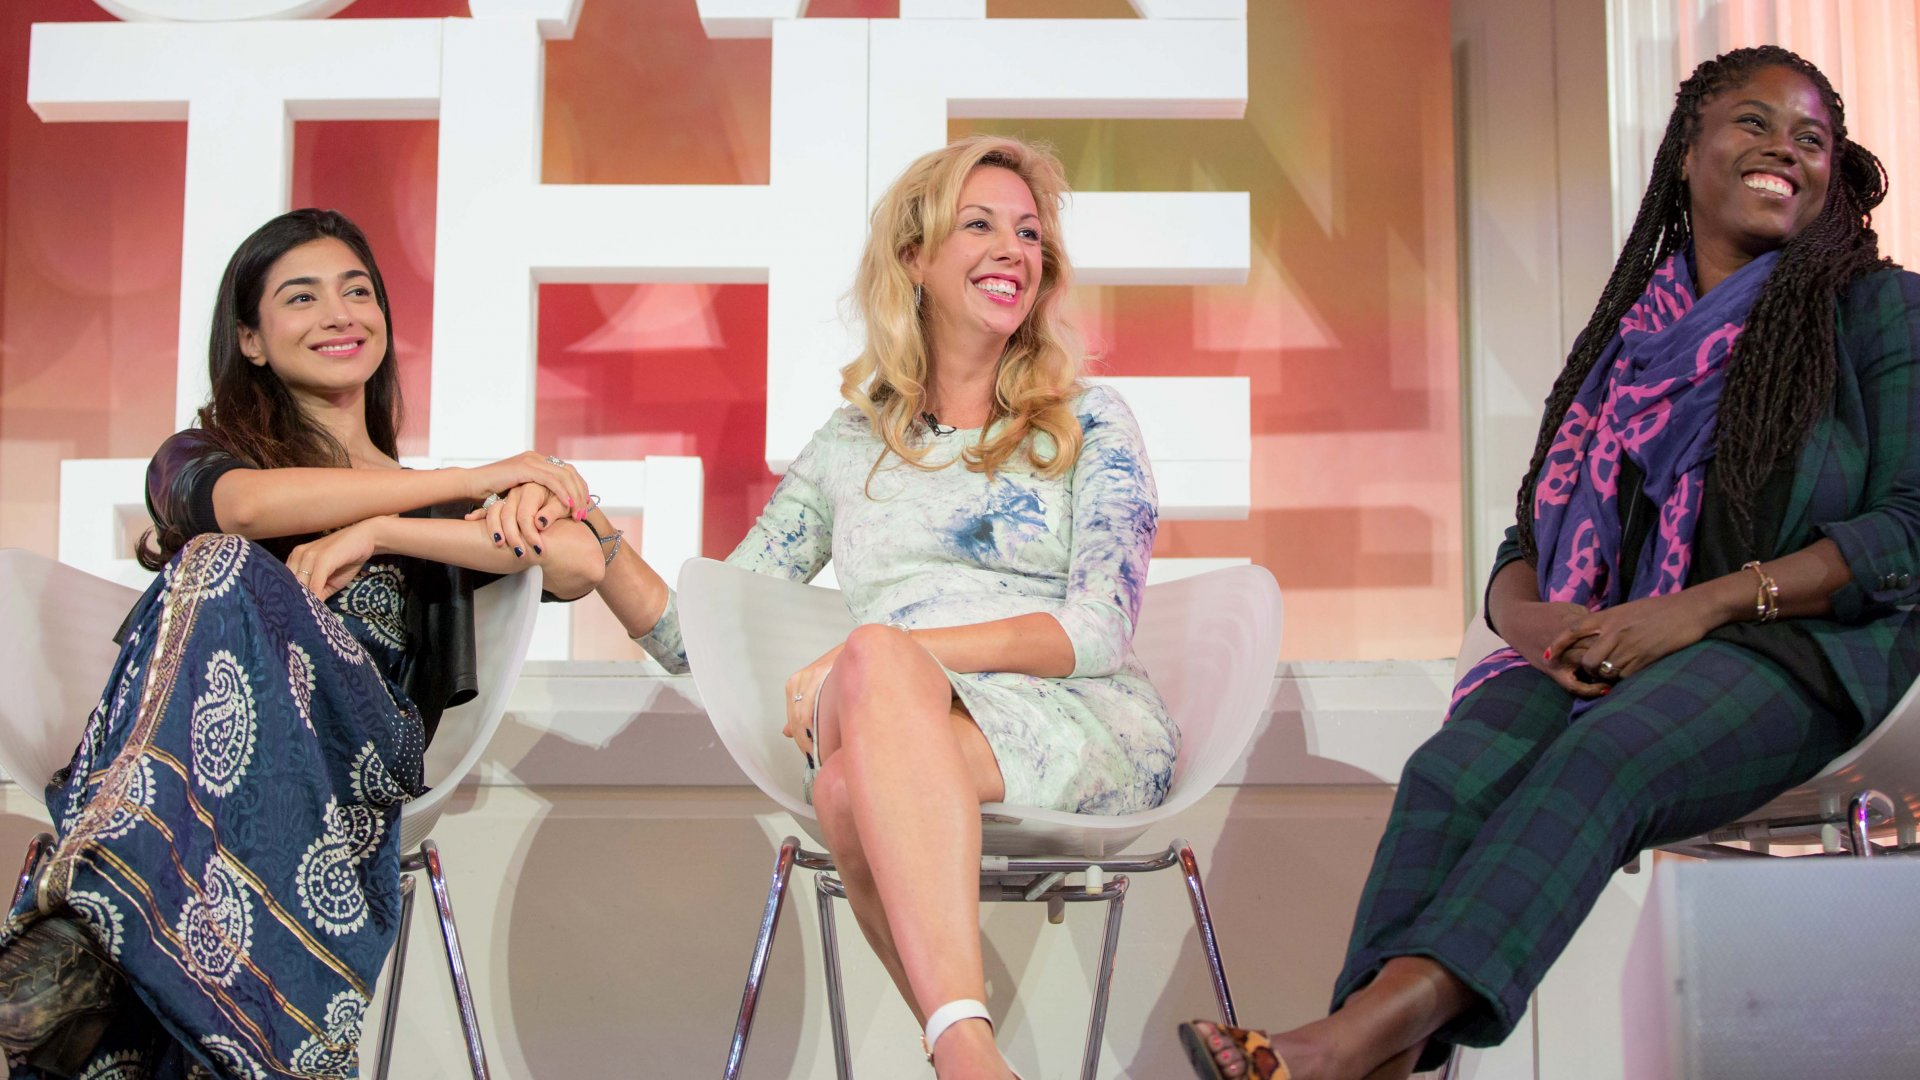 3 Successful Social Entrepreneurs on How to Do Good in the World